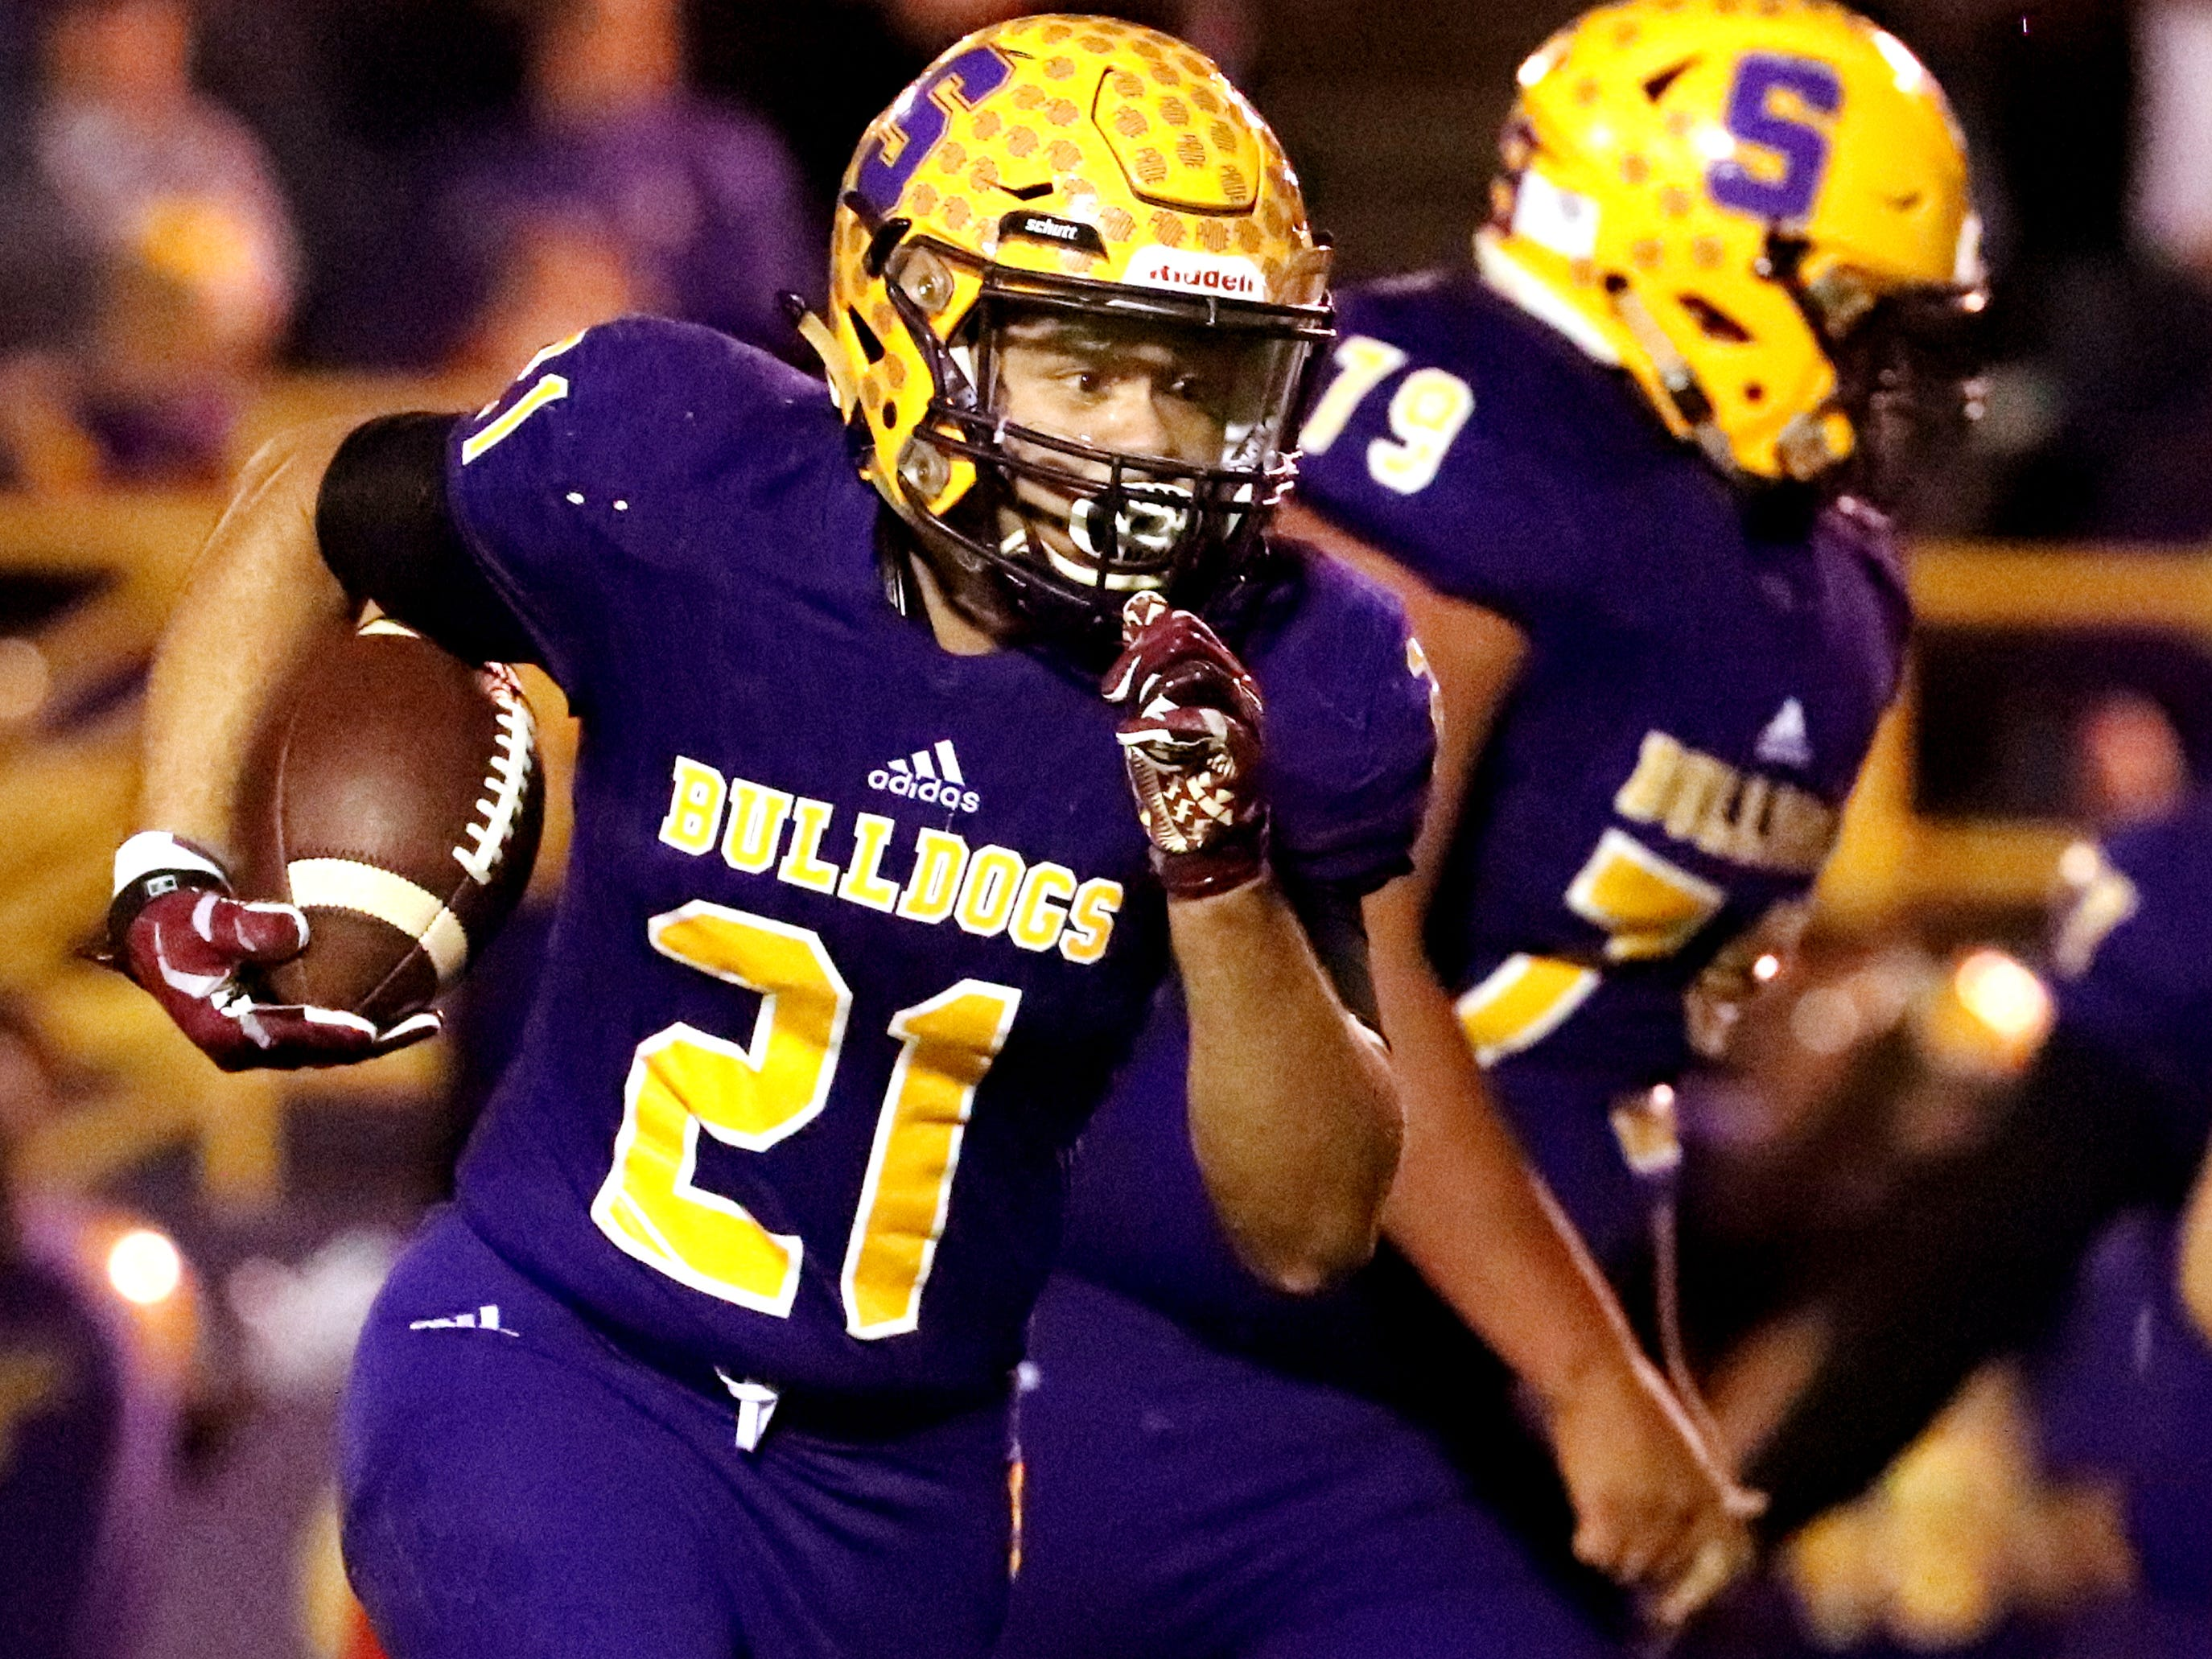 Smyrna's Blake Watkins (21) runs the football in for a touchdown during the game against Stewarts Creek at Smyrna High School on Friday, Oct. 12, 2018.